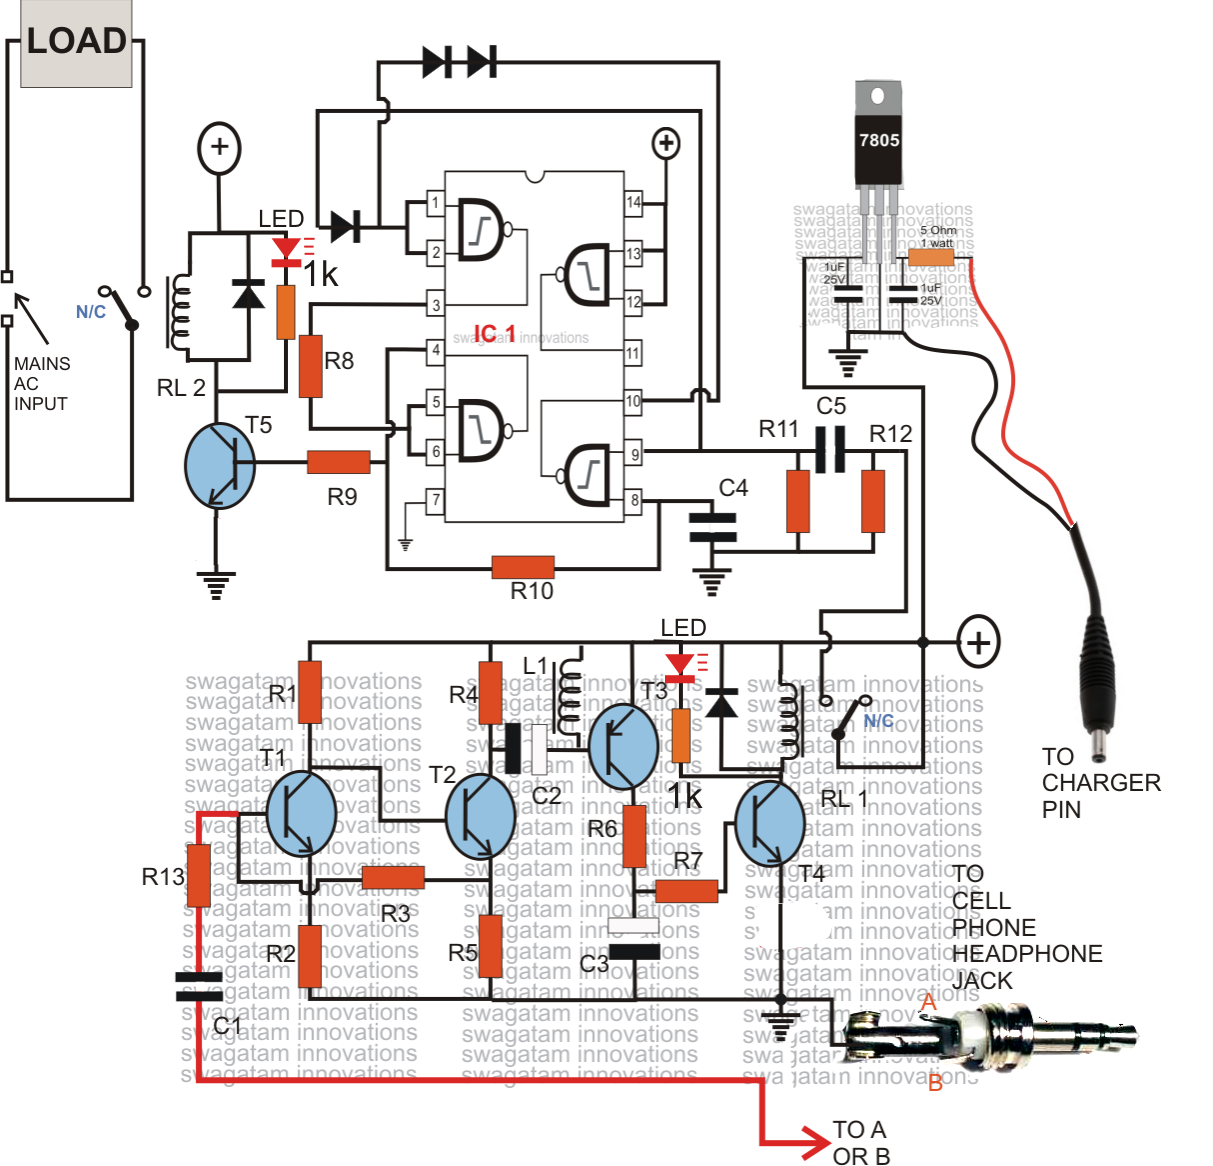 cell phone audio jack wiring diagram